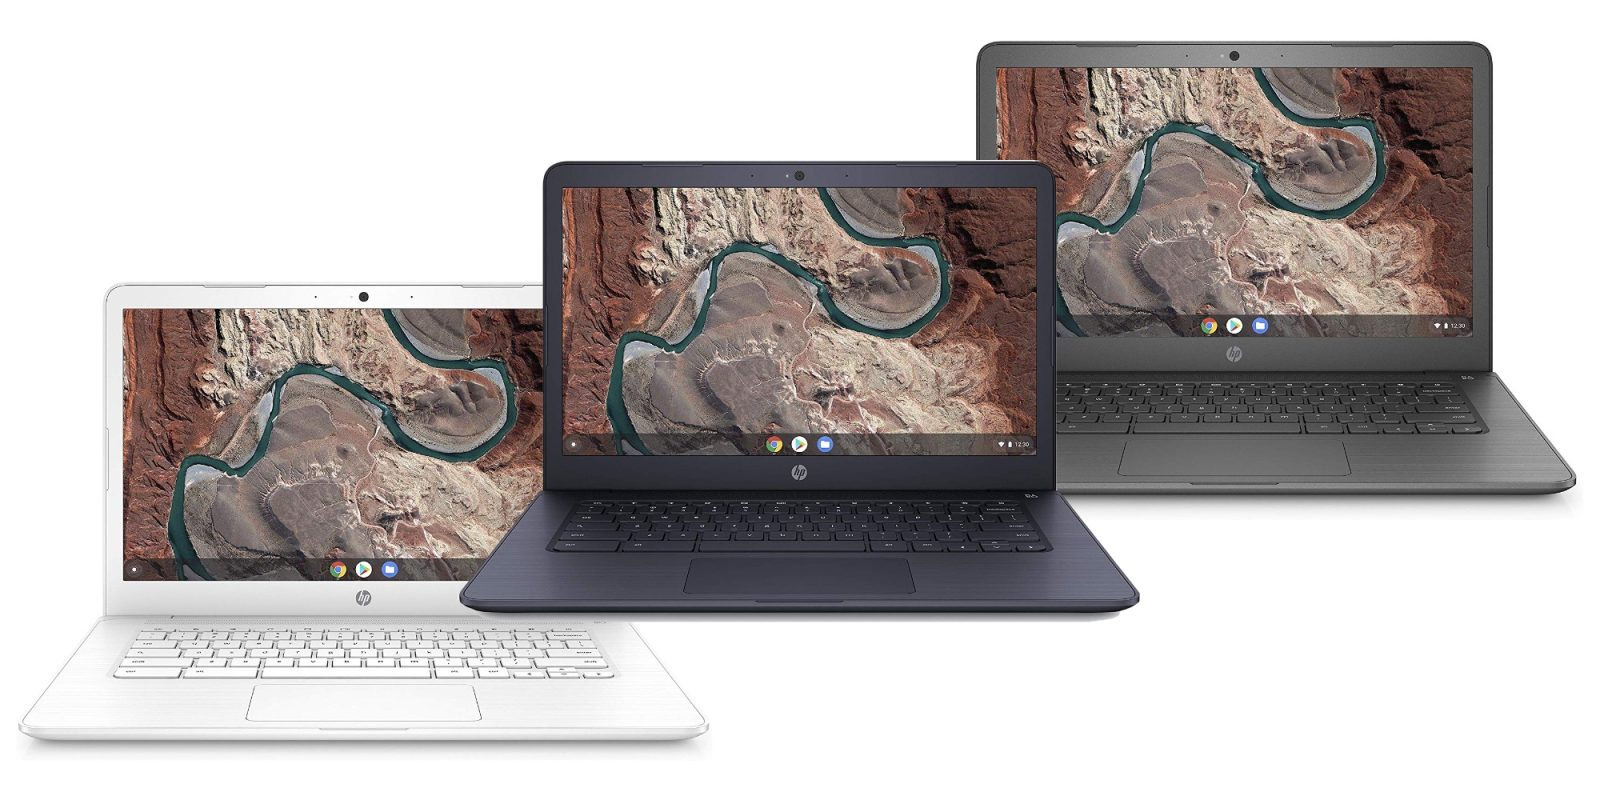 Enjoy all-day battery life on the HP Chromebook 14, now down to $230 ($50 off)